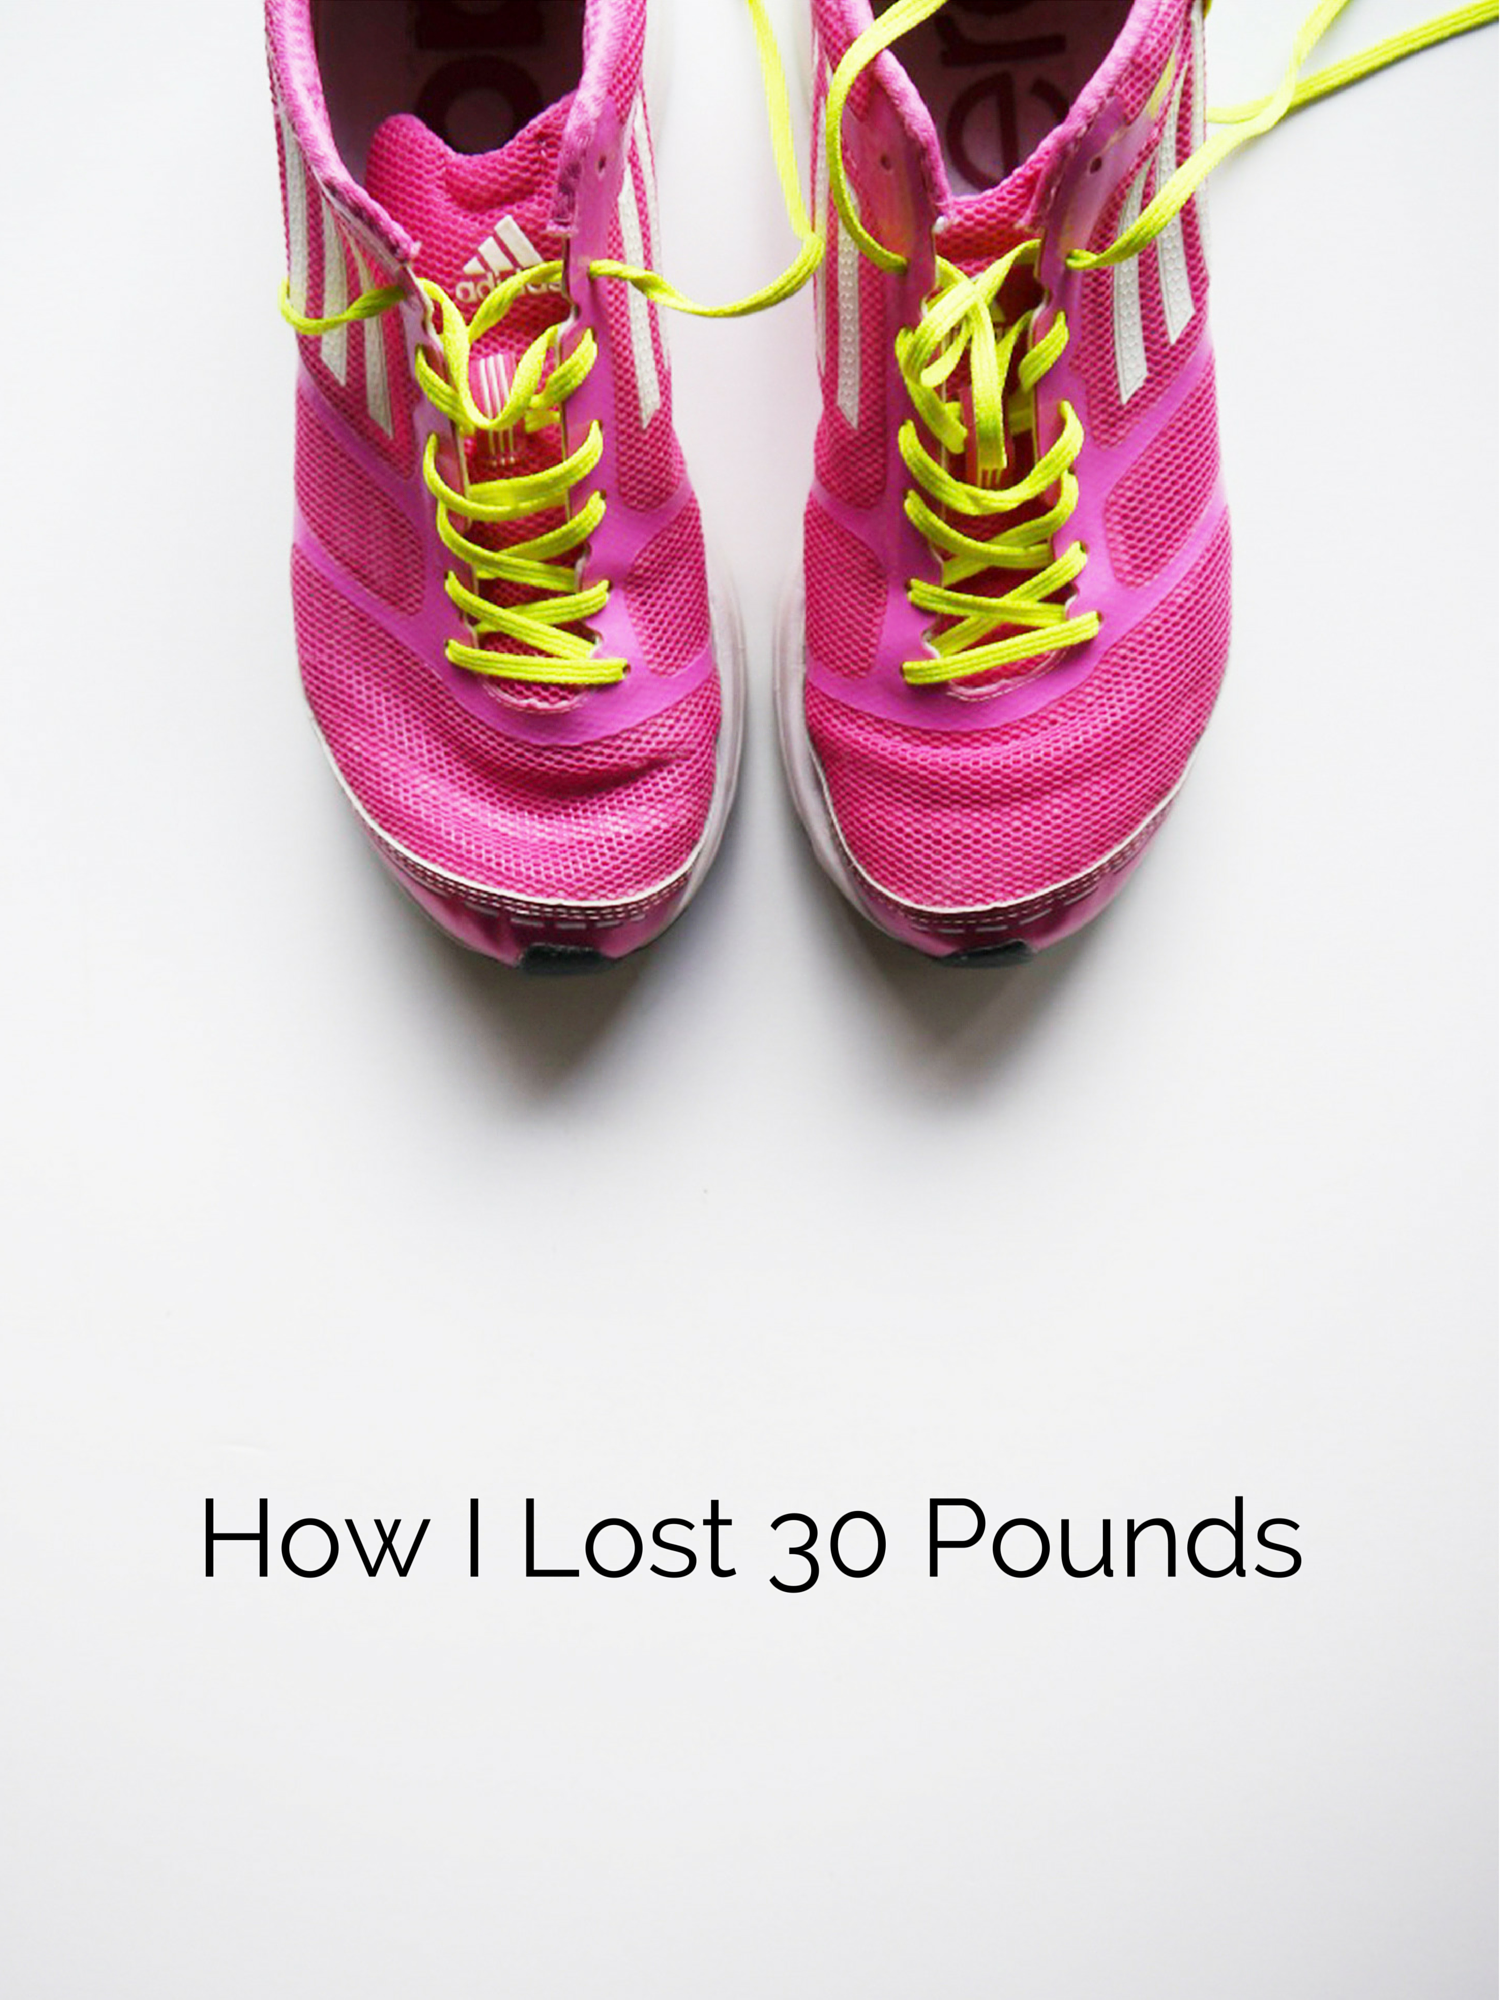 How I Lost 30 Pounds